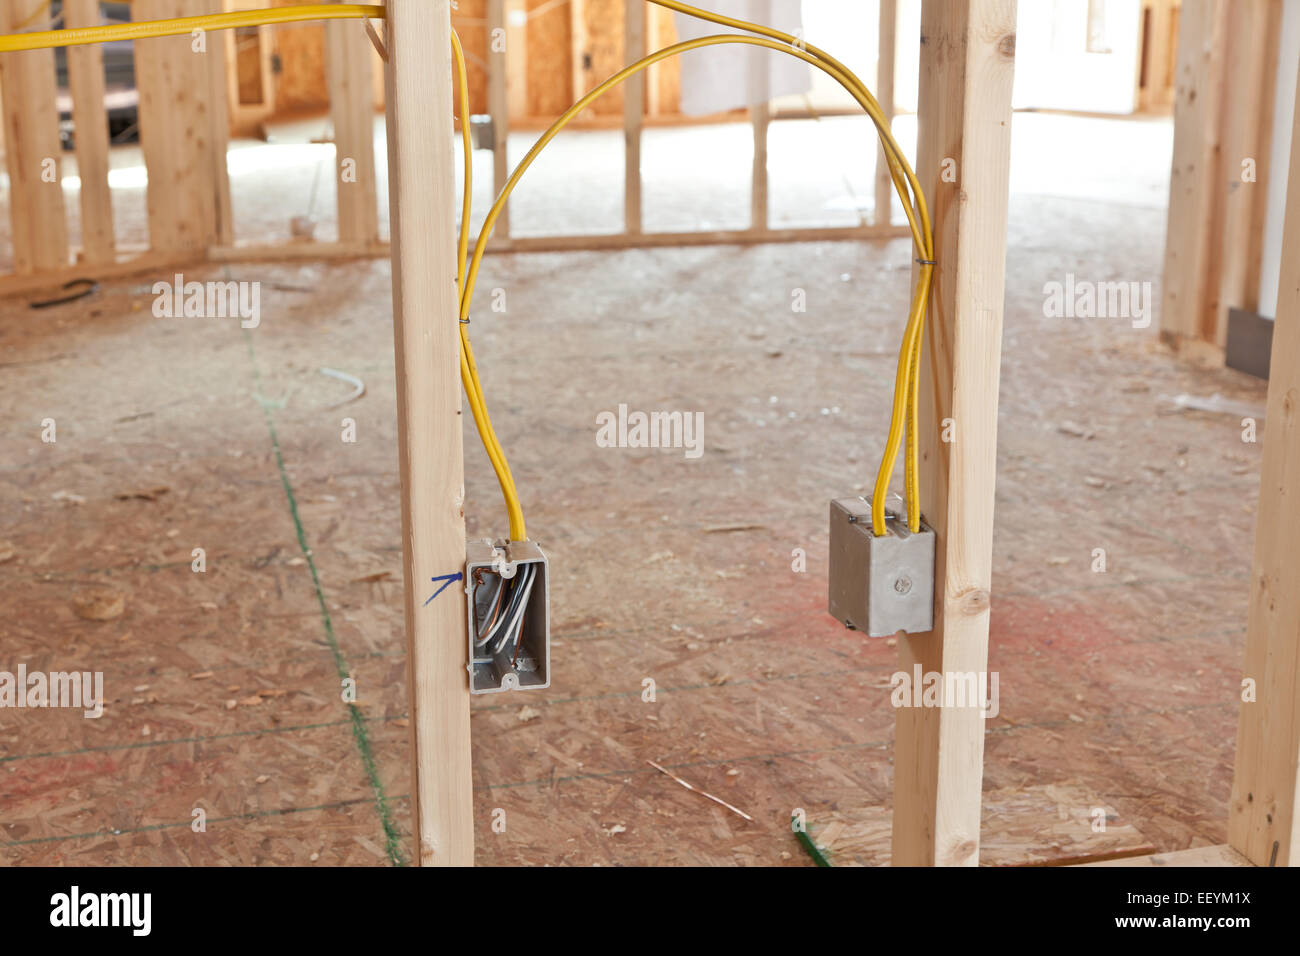 Electrical Wiring New Zealand Not Lossing Diagram House Rules In Home Construction Stock Photo